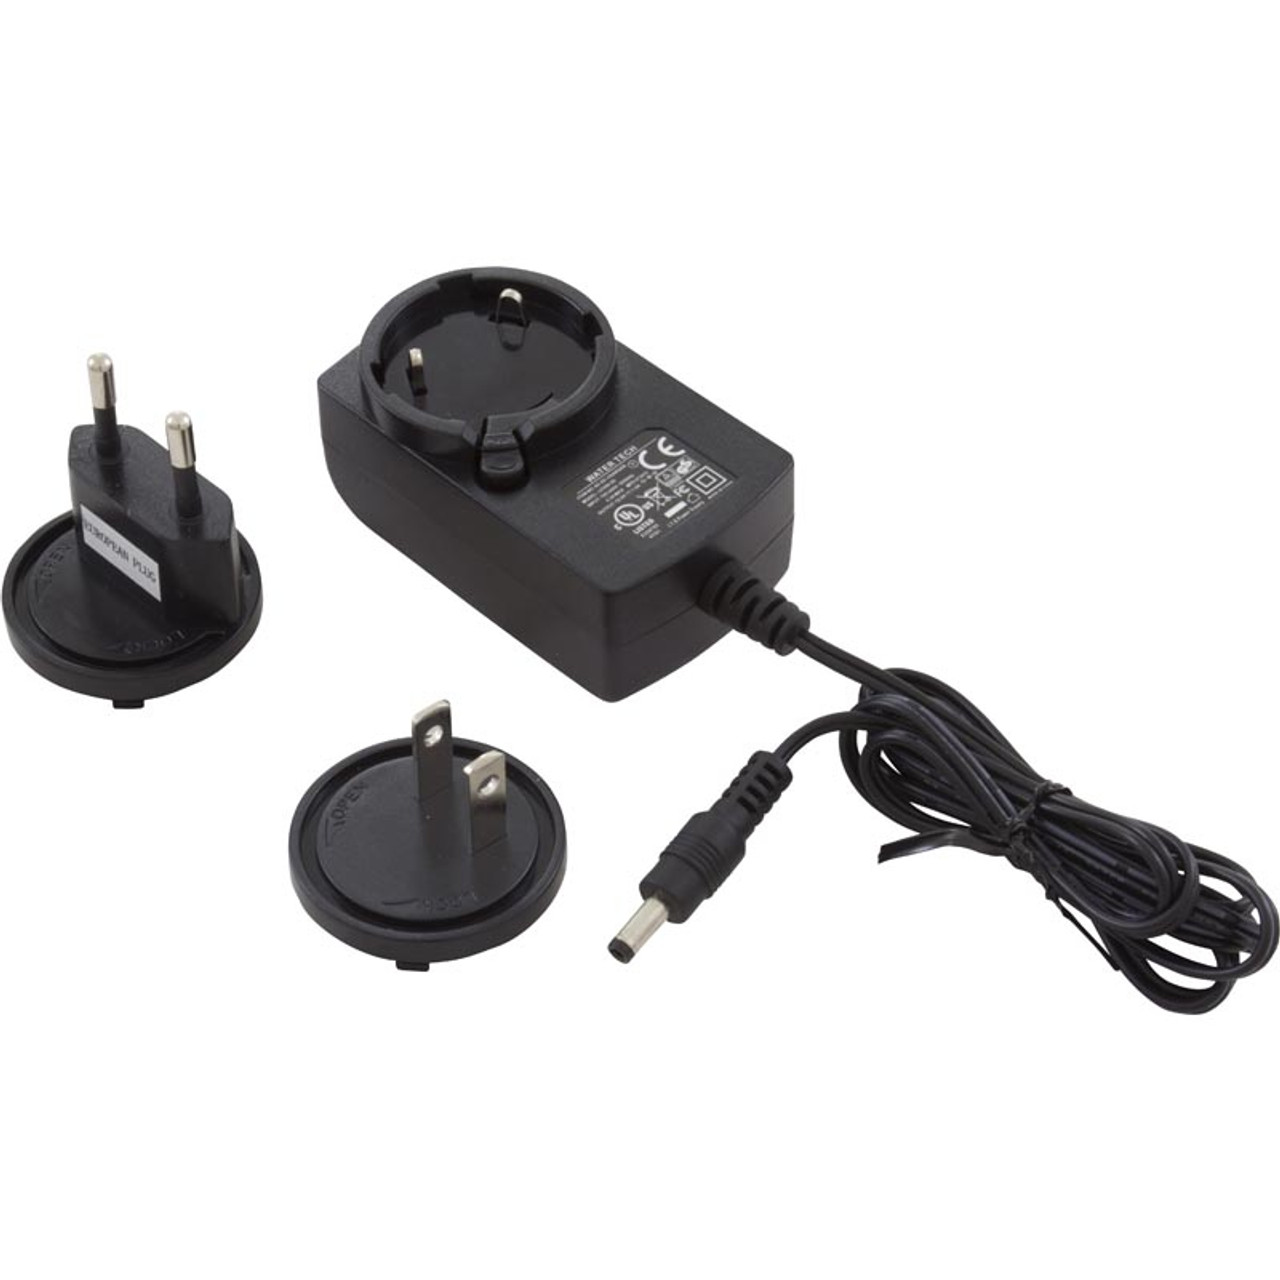 Battery Charger, Water Tech Pool Buster, Wall, Lithium